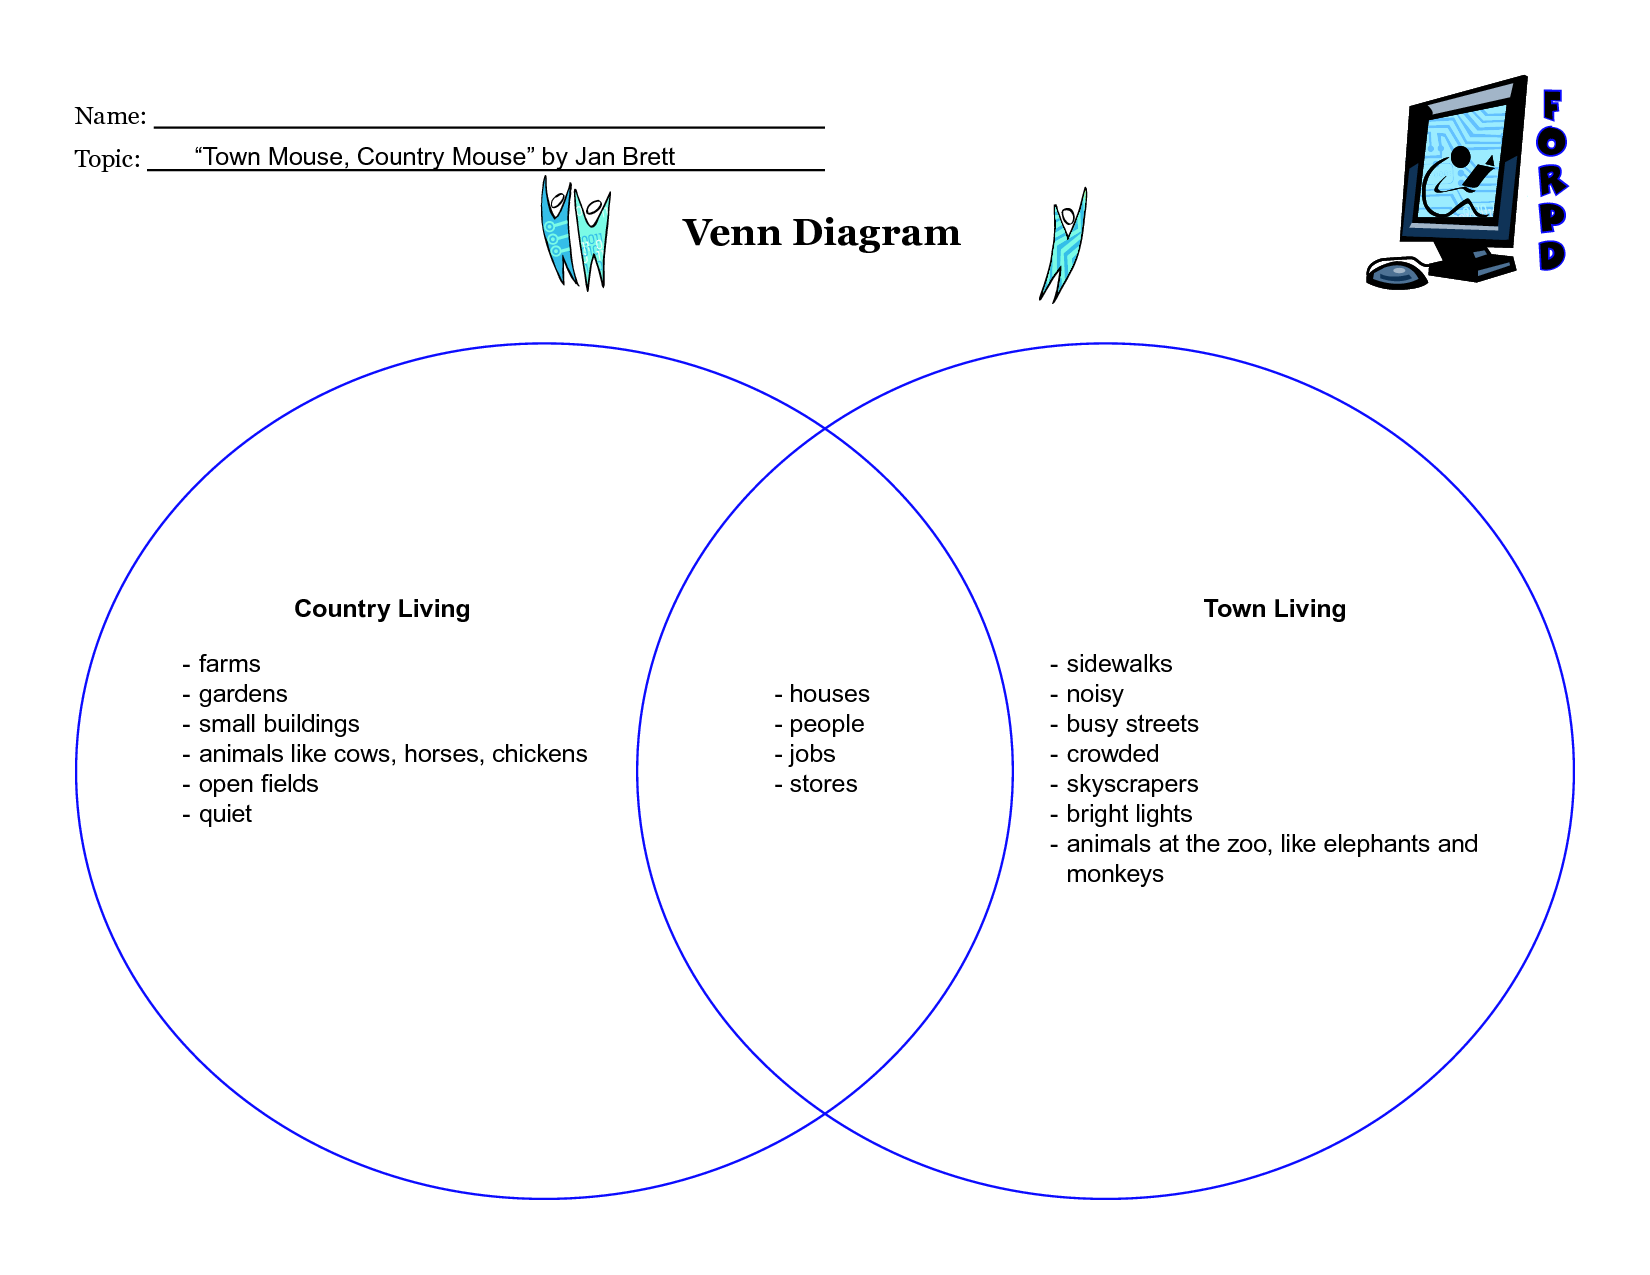 Science Essay Venn Diagram Worksheet Country Life City Life  Name Topic Town Mouse  Country Mouse By Jan Brett Teaching Essay Writing High School also How To Start A Science Essay Venn Diagram Worksheet Country Life City Life  Name Topic Town  Essays On Science And Technology